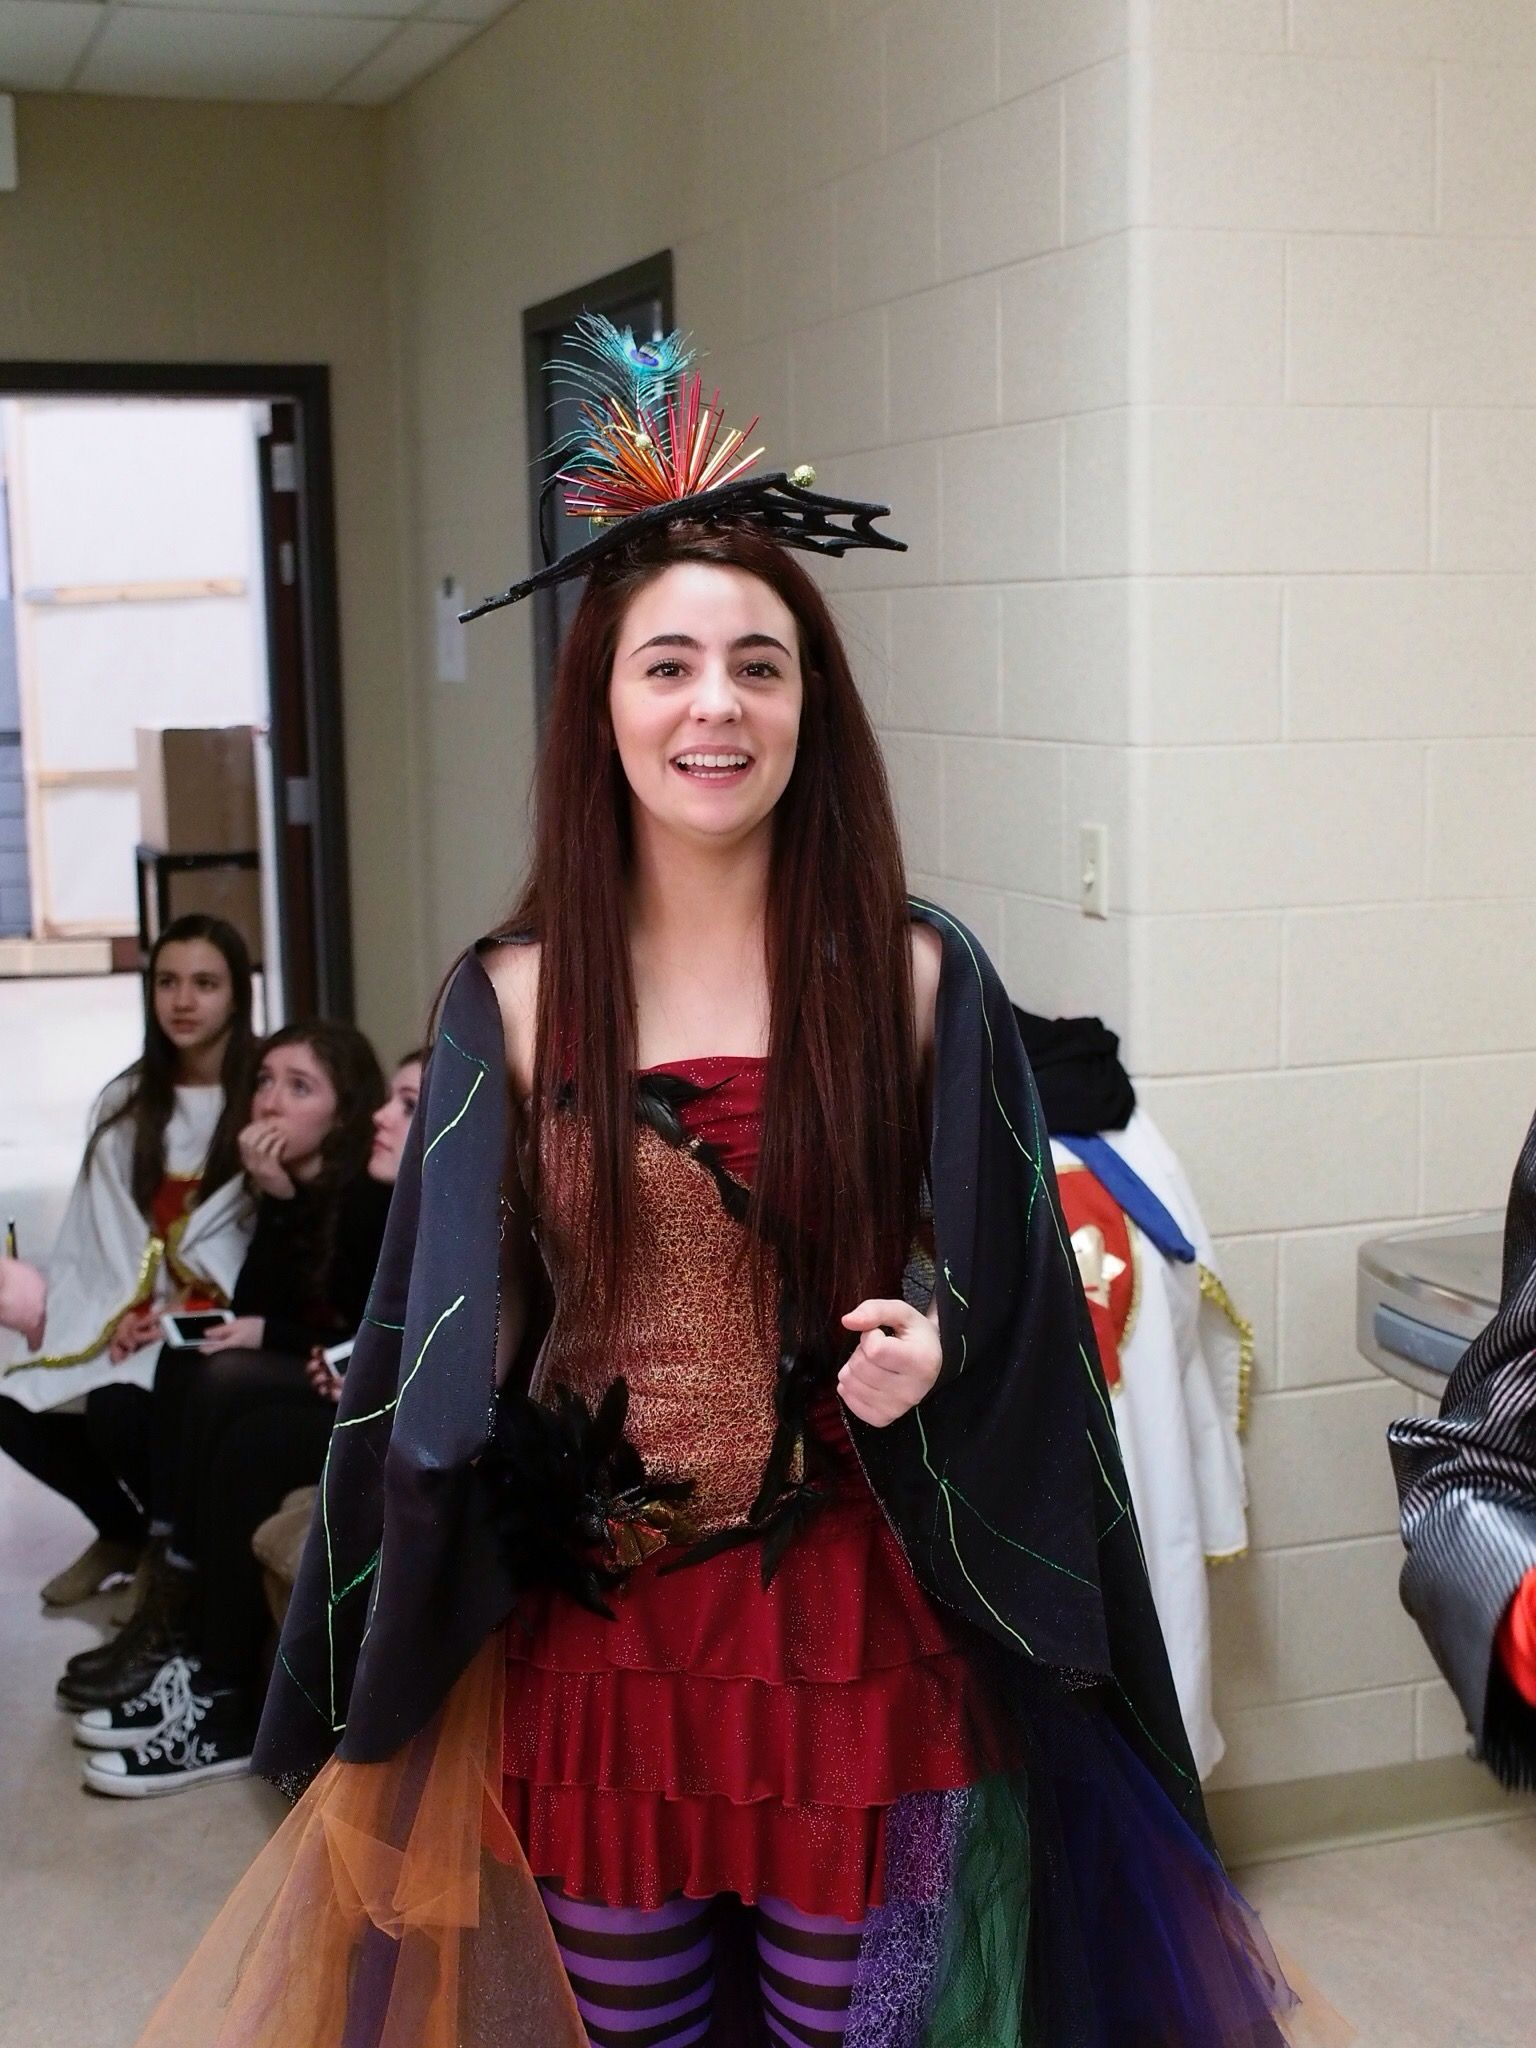 Wicked Witch @ HSE